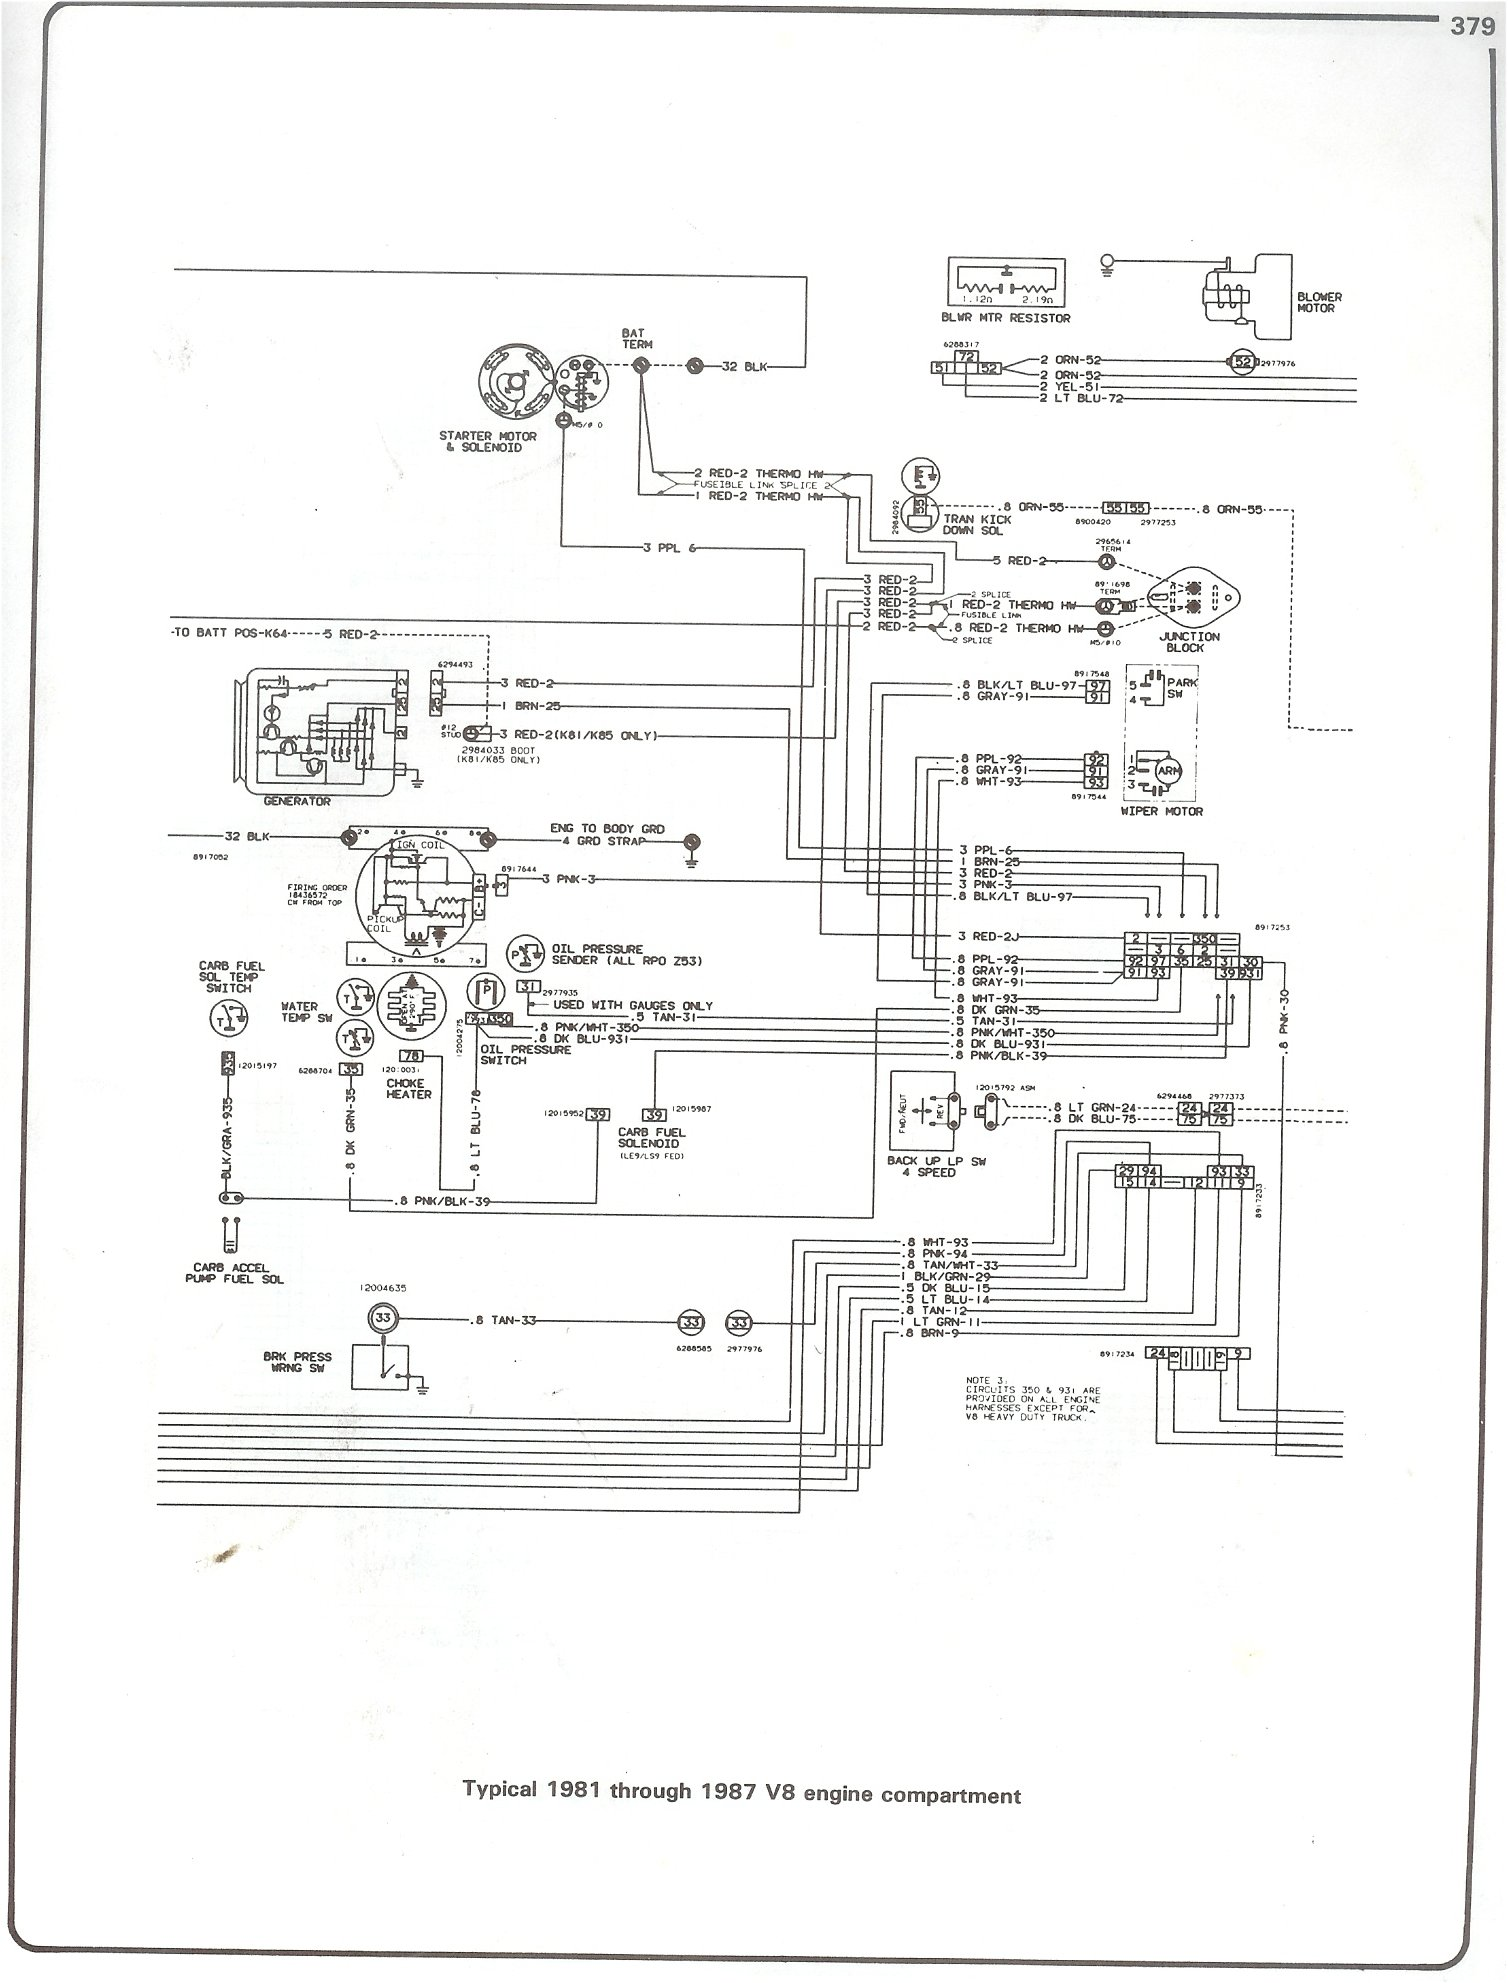 complete 73 87 wiring diagrams rh forum 73 87chevytrucks com 86 chevy k10 wiring diagram 1986 chevy c10 wiring diagram for engine